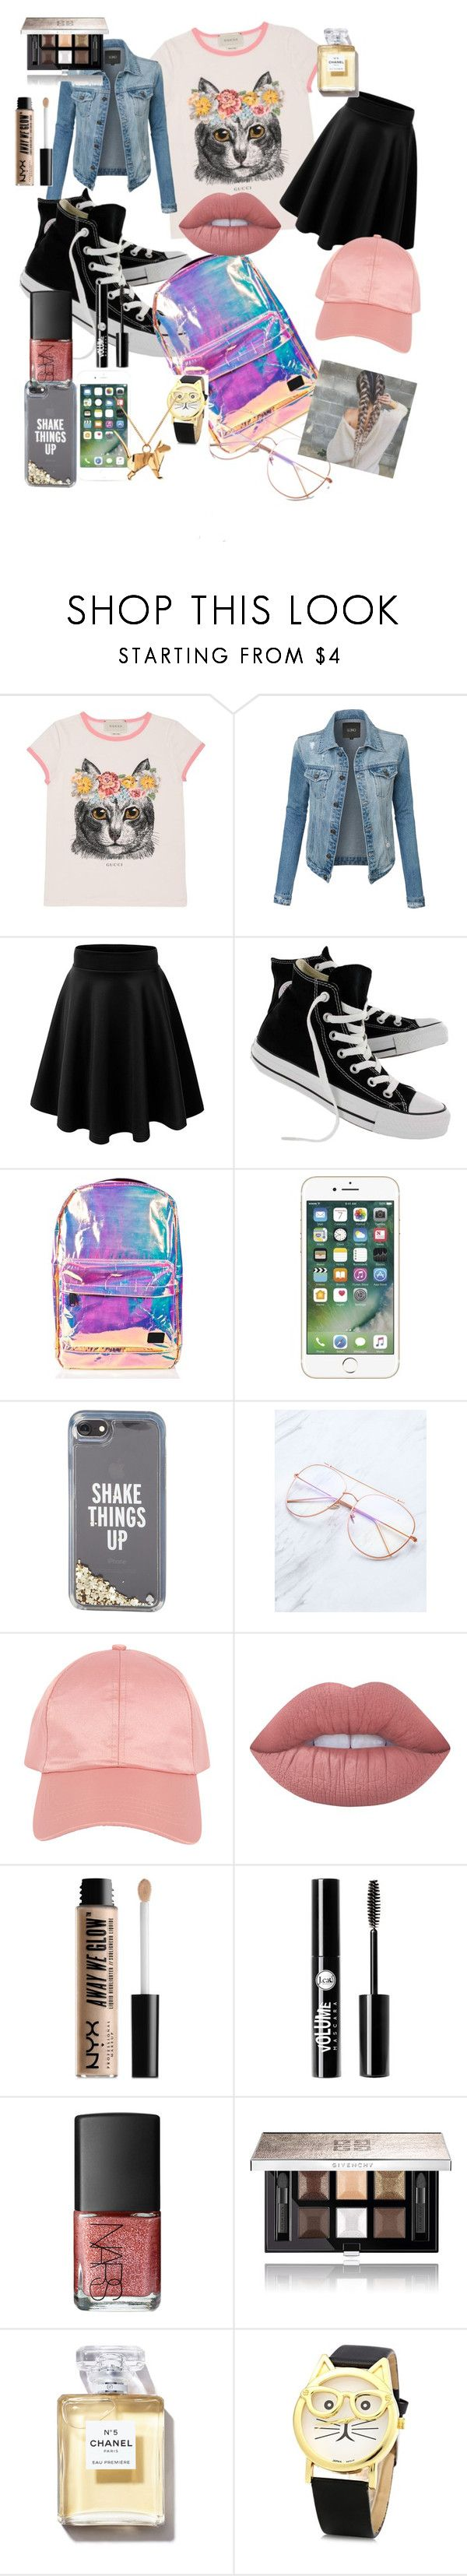 """""""A day out"""" by maeve-lamson on Polyvore featuring Gucci, LE3NO, Converse, Spiral, Kate Spade, Armitage Avenue, Lime Crime, NYX, Charlotte Russe and NARS Cosmetics"""